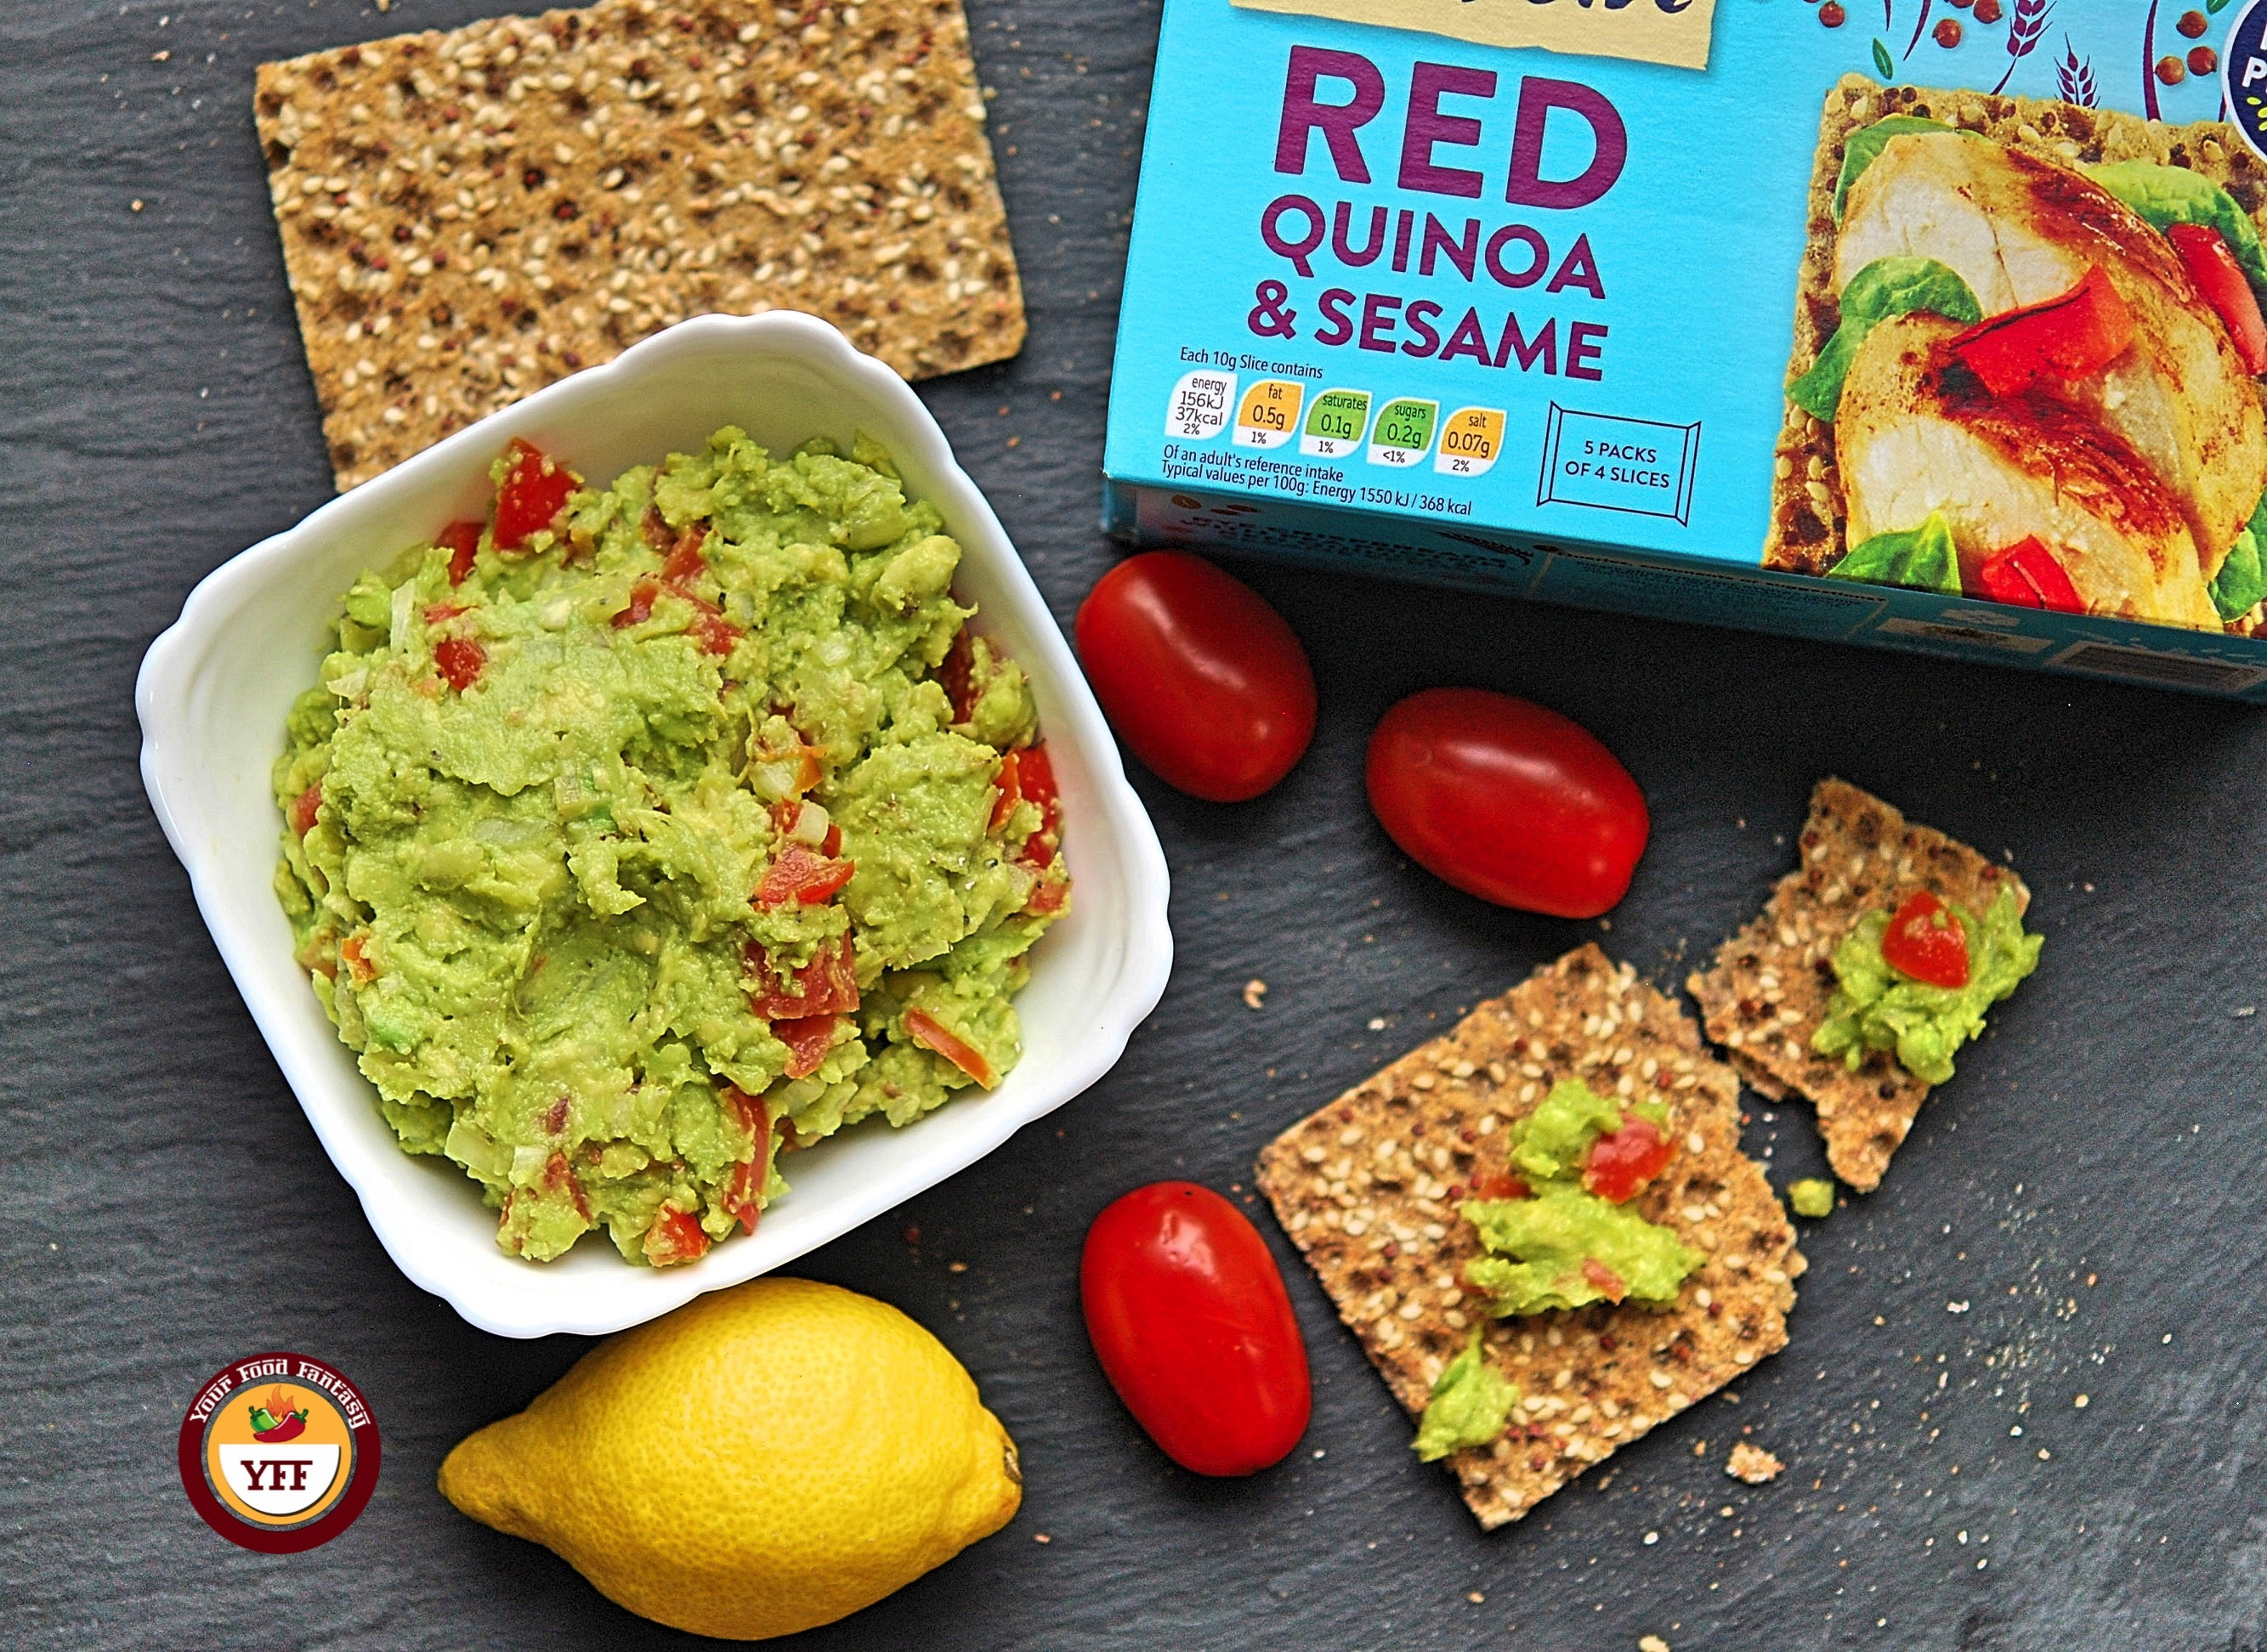 Ryvita Protien Red Quinoa & Sesame Review By YourFoodFantasy.com